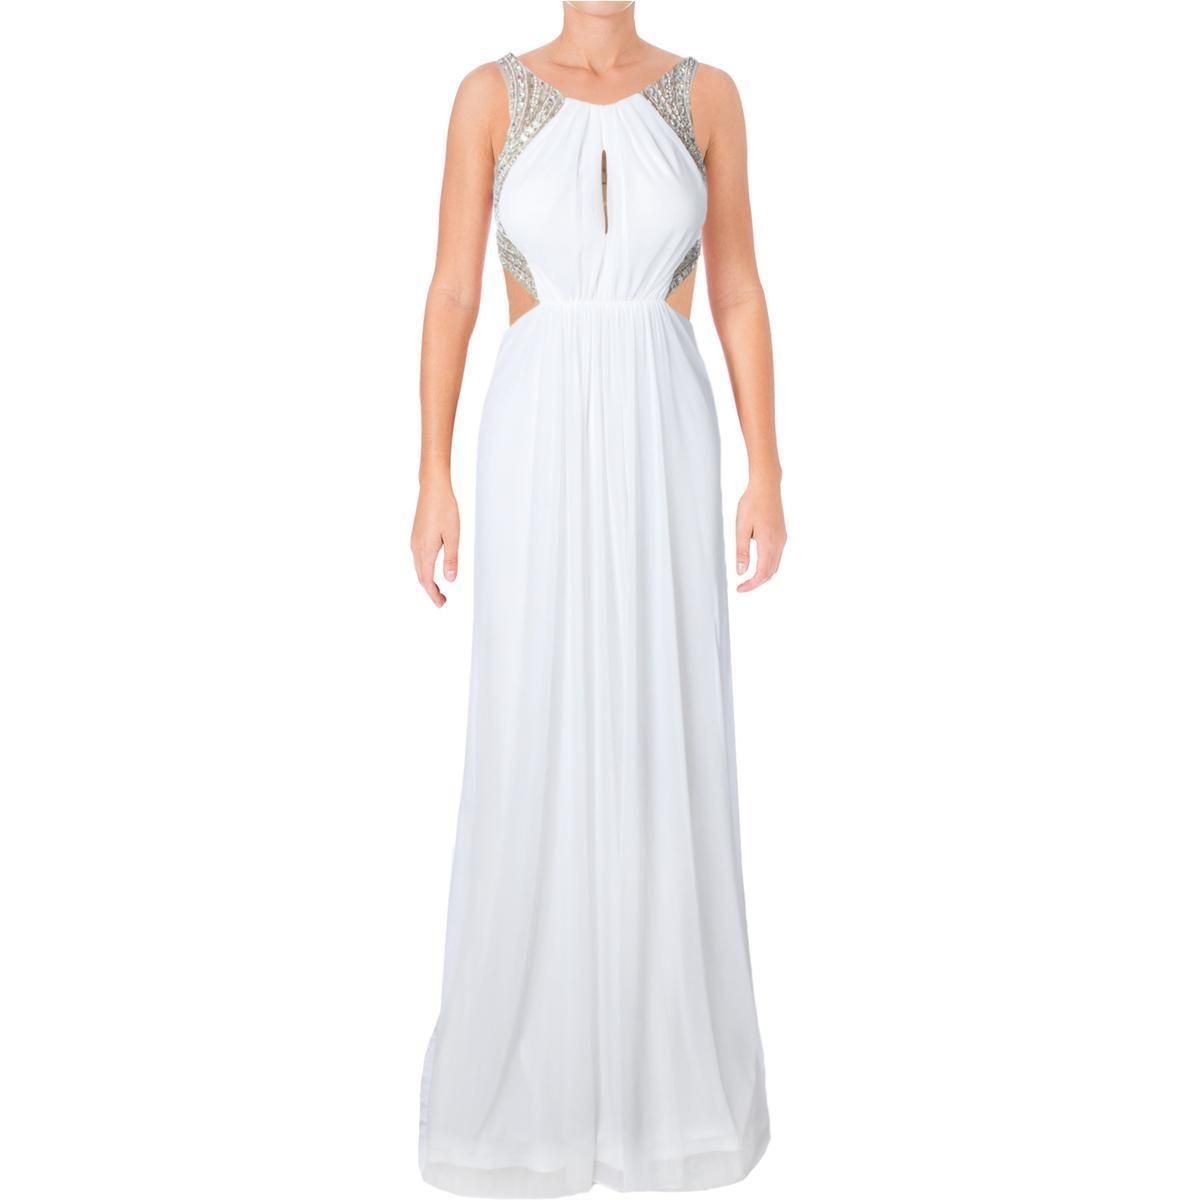 Awesome awesome terani couture white embellished illusion prom